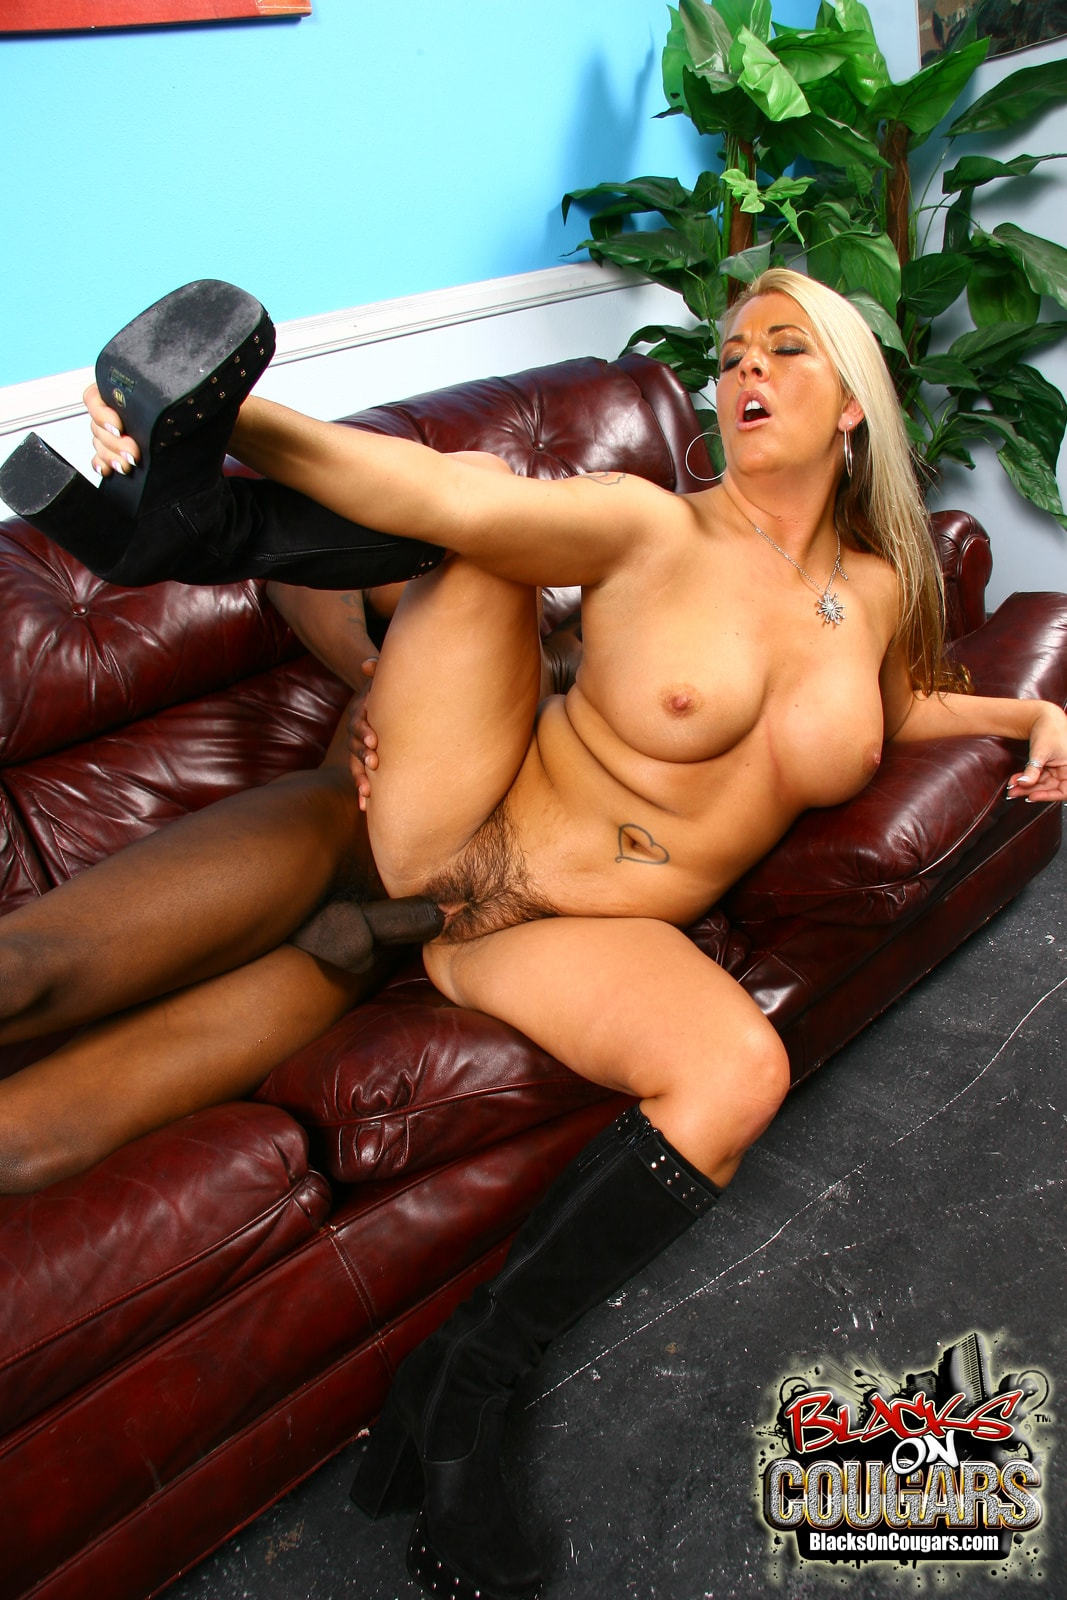 Dogfart '- Blacks On Cougars' starring Joclyn Stone (Photo 28)